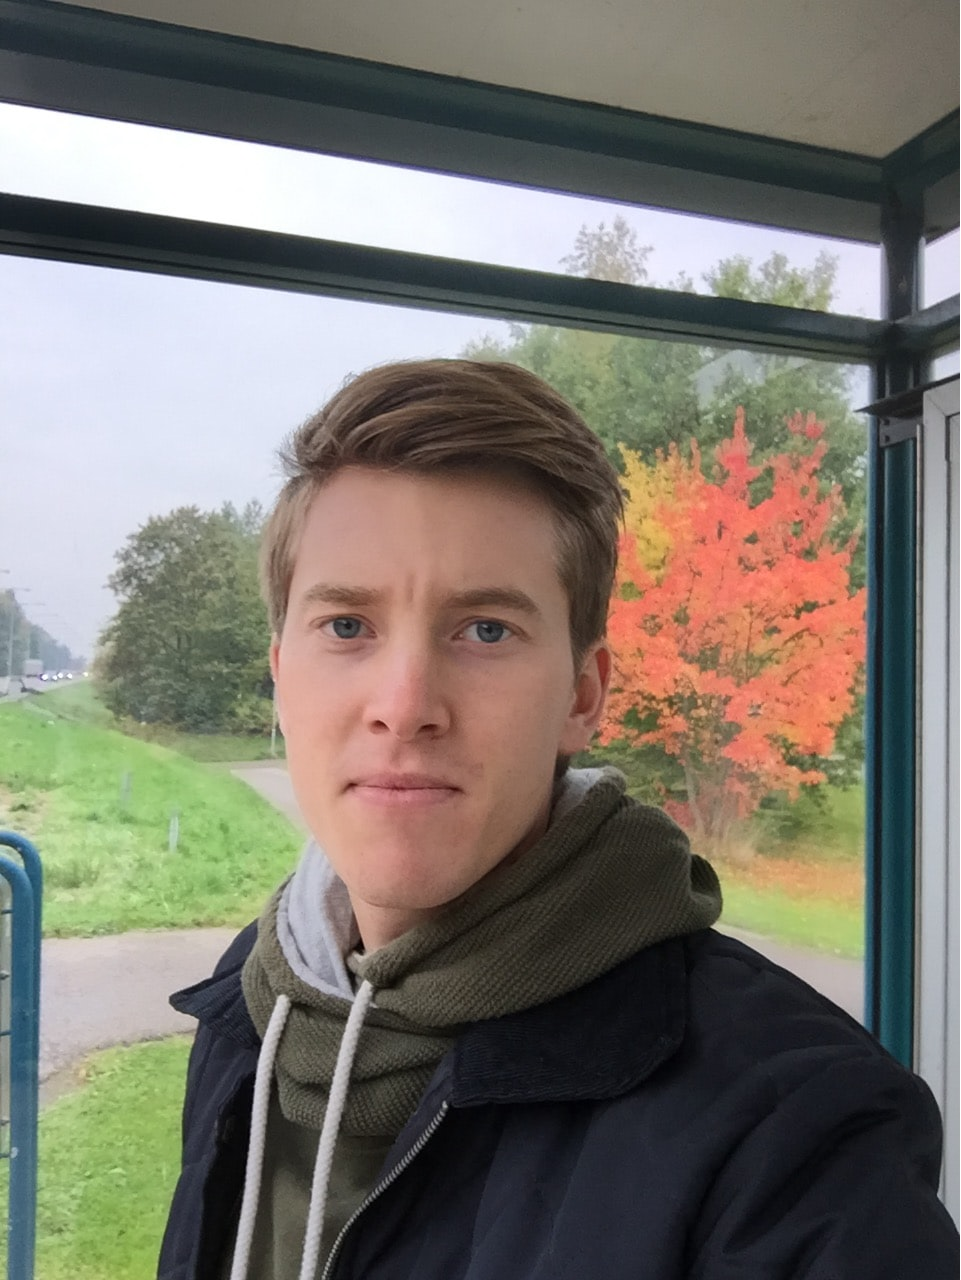 Avatar of user Max LIndroos